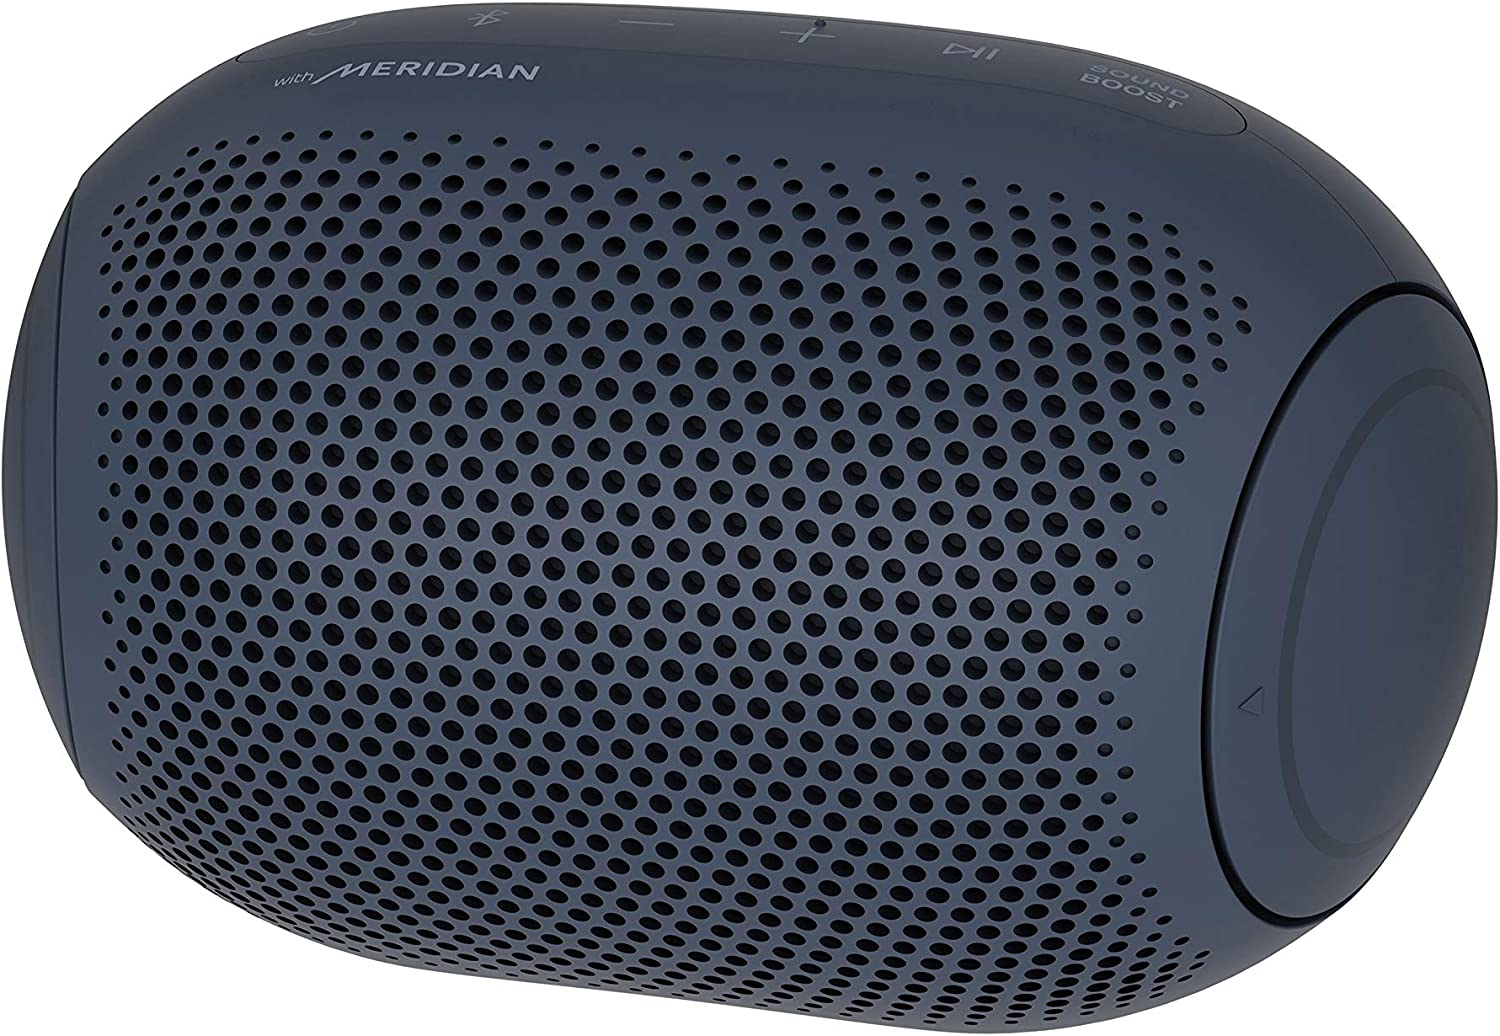 LG PL2 XBOOM Go Water-Resistant Wireless Bluetooth Party Speaker with Up to 10 Hours Playback – Black